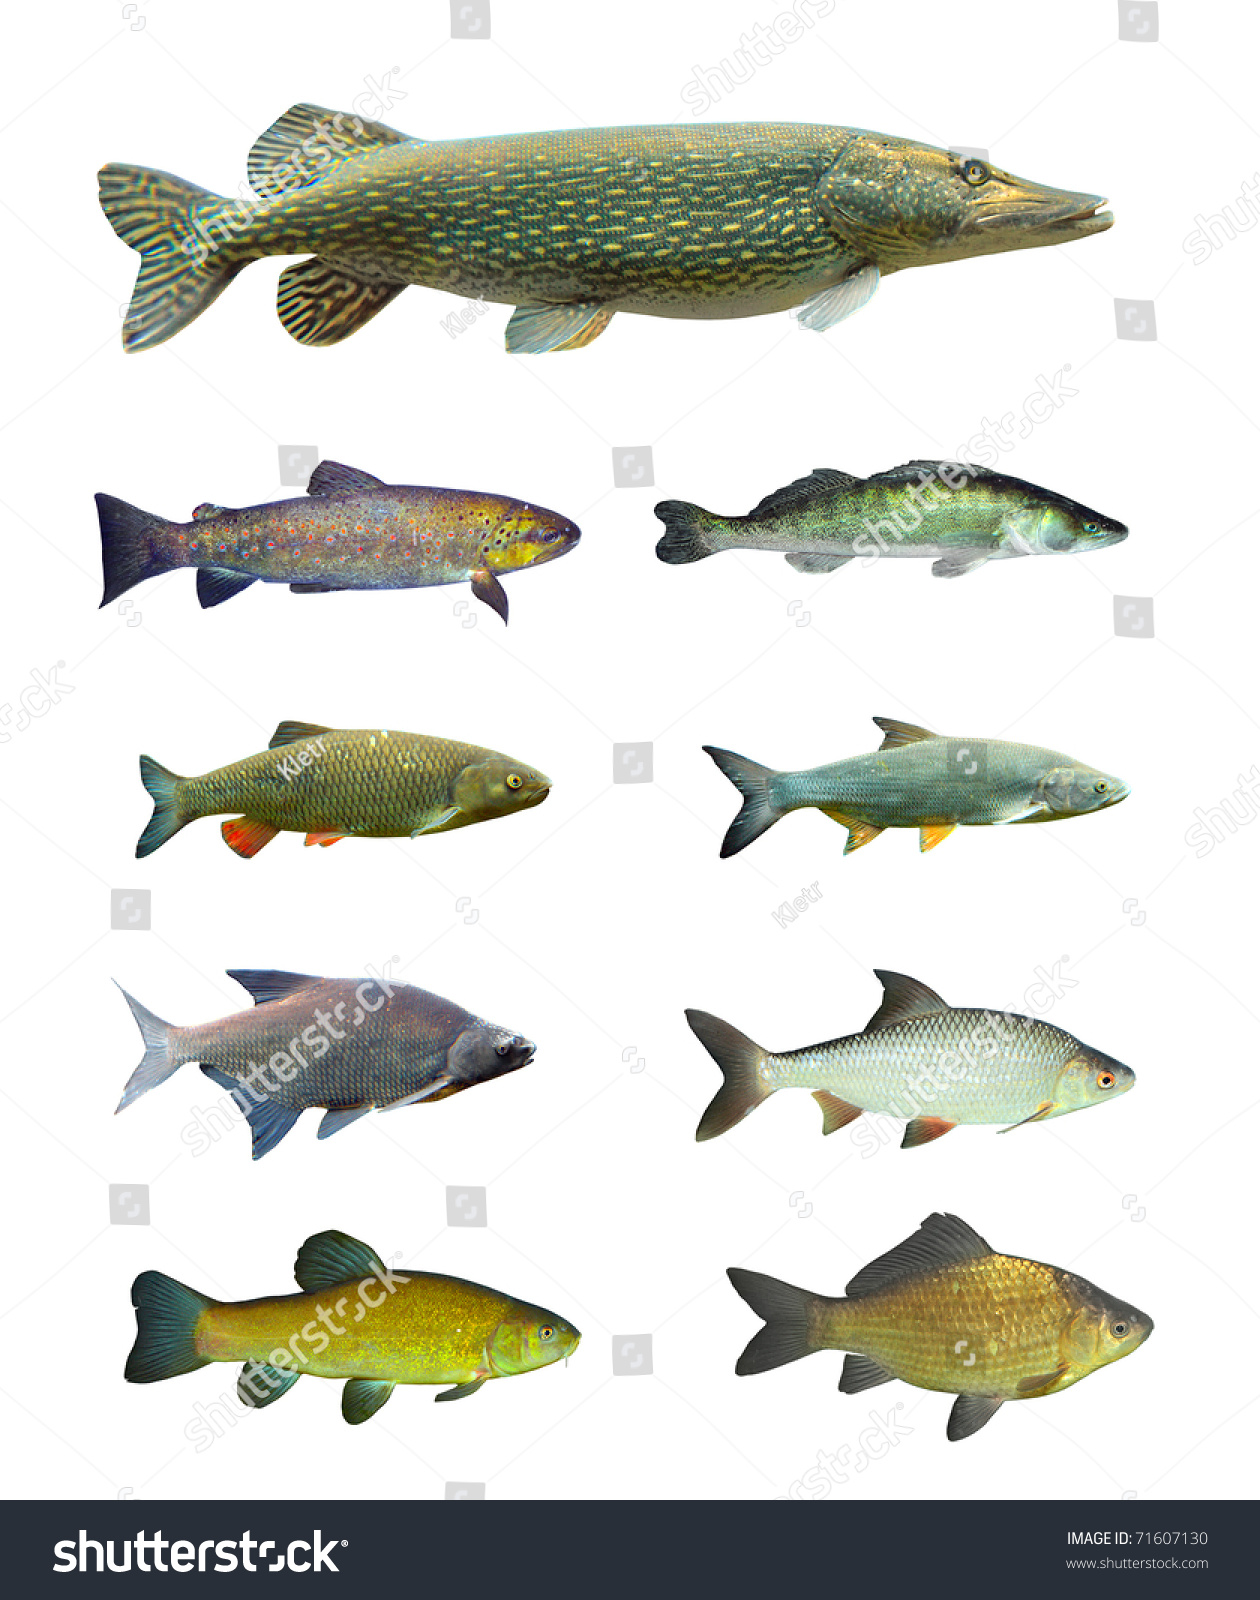 Freshwater fish - Great Collection Of Freshwater Fish On White Background